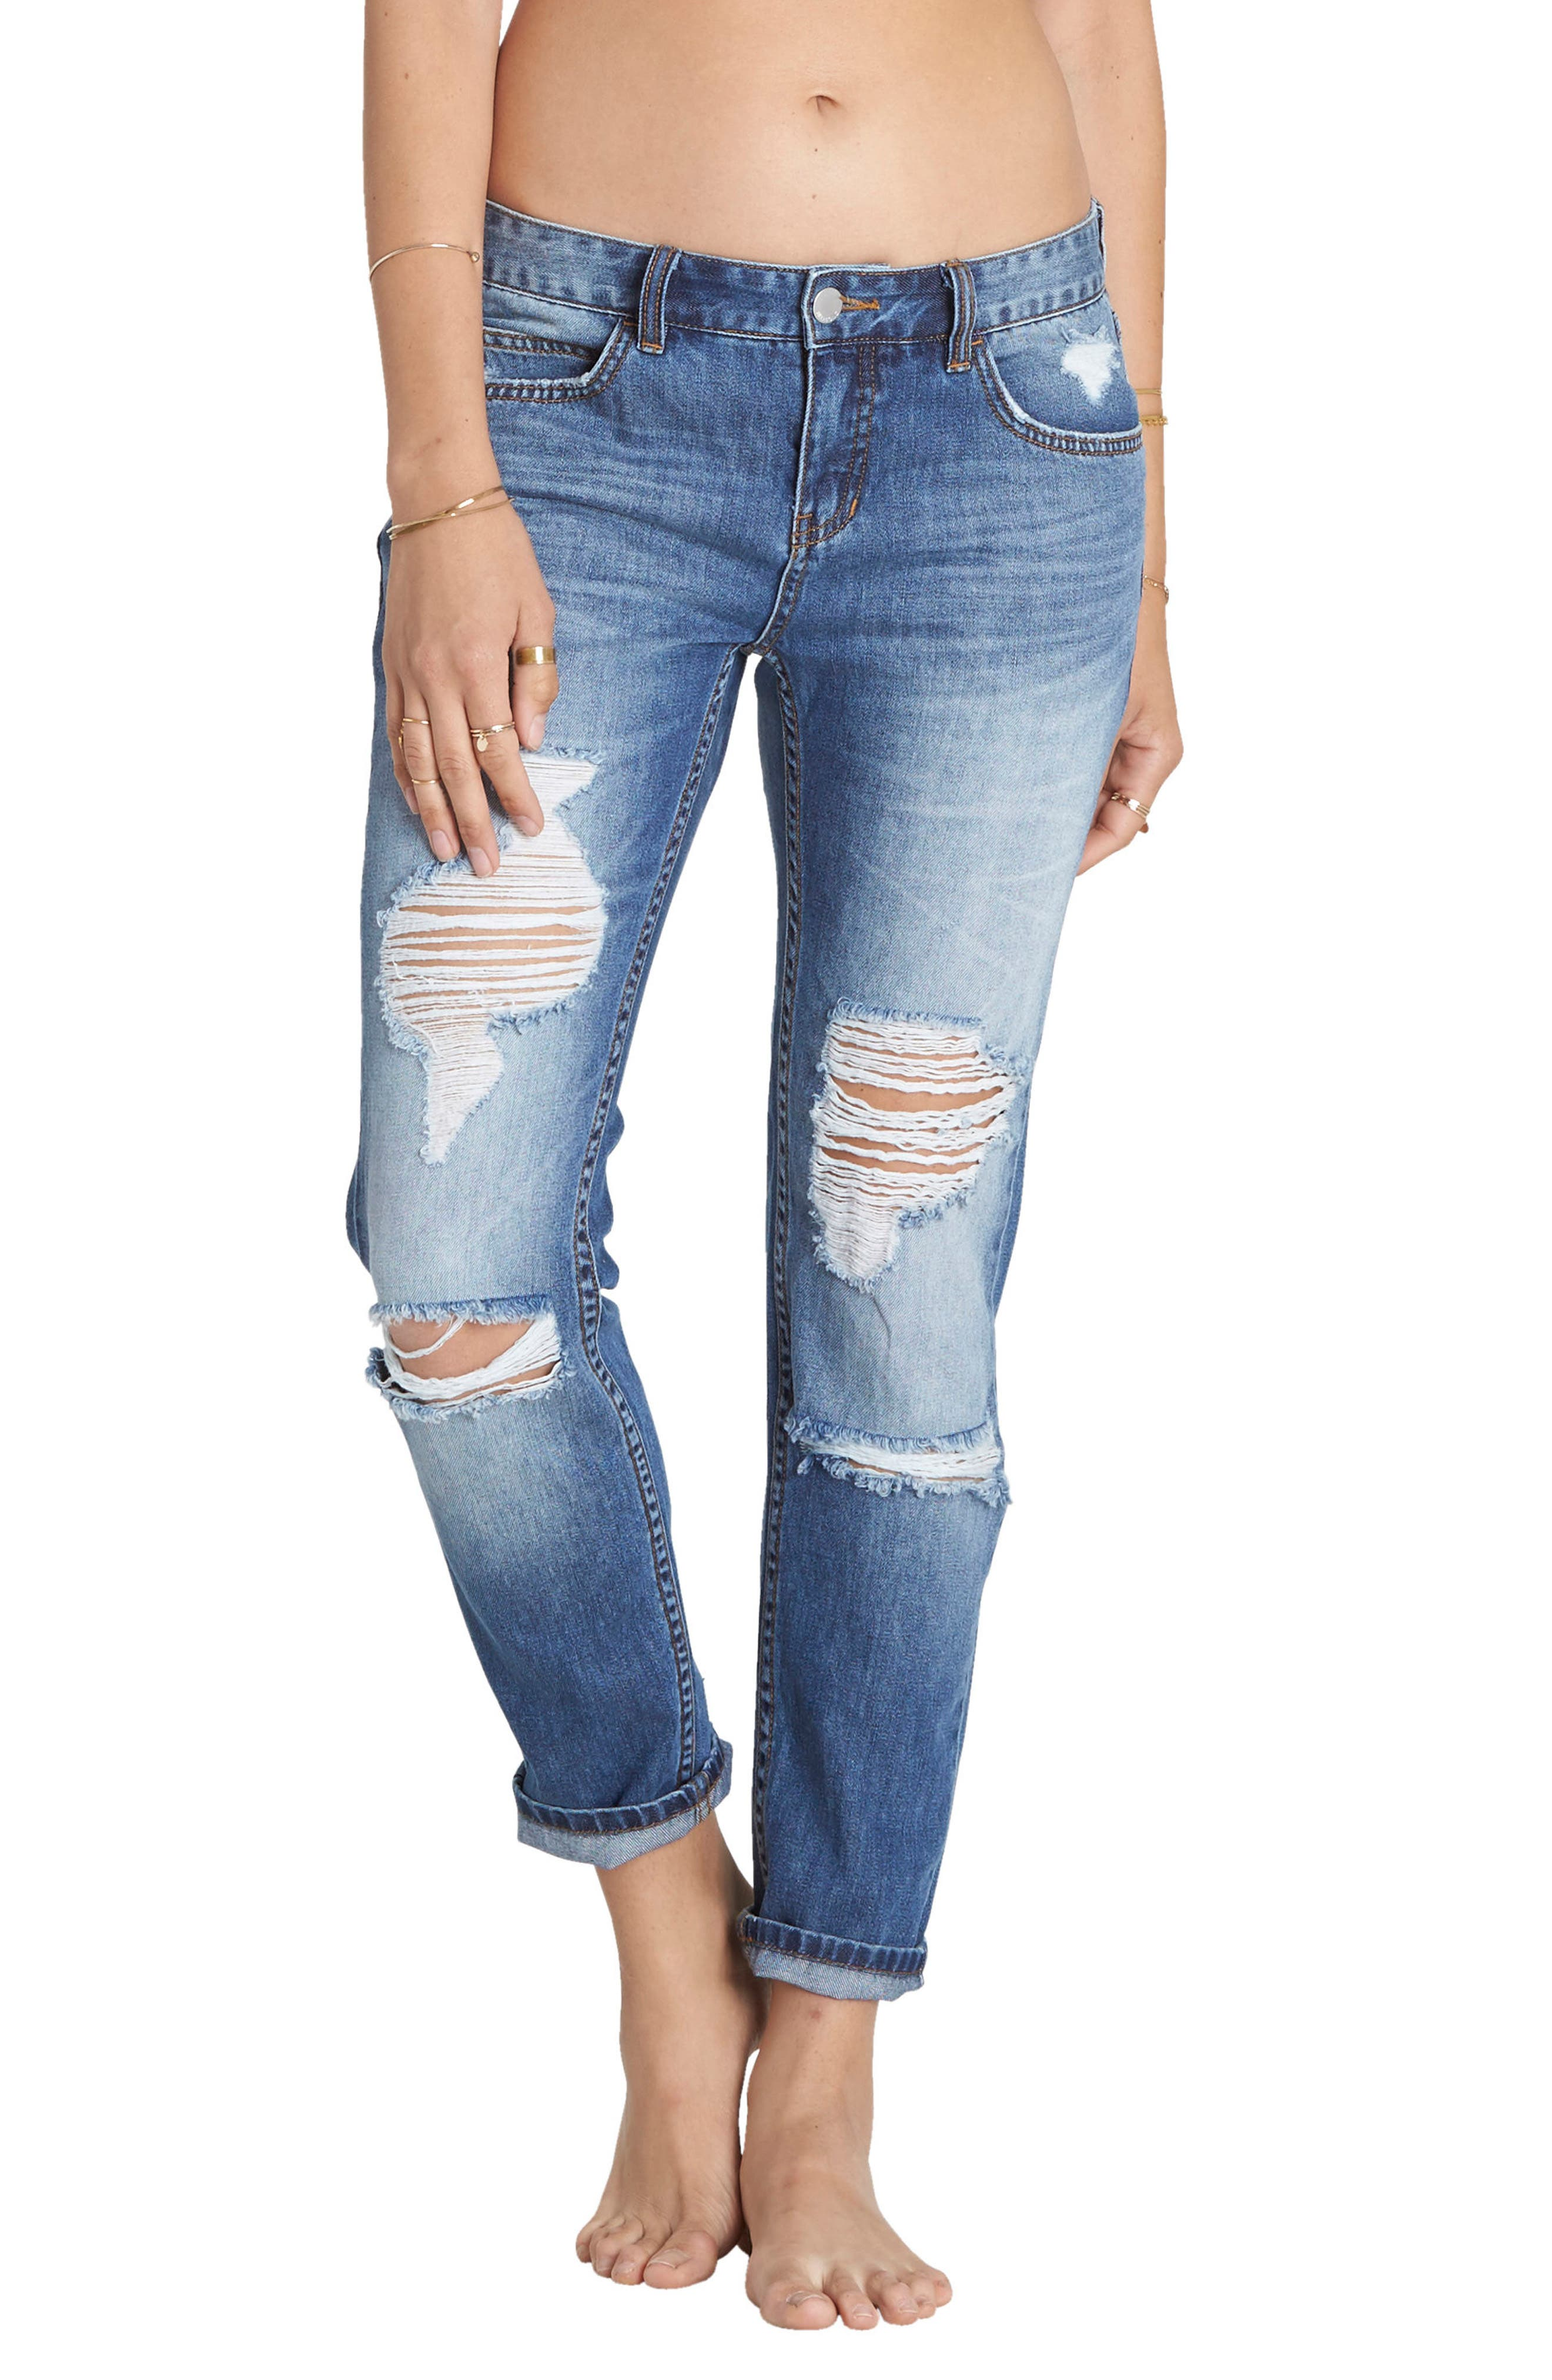 Hey Boy Ripped Girlfriend Jeans,                         Main,                         color, Pacific